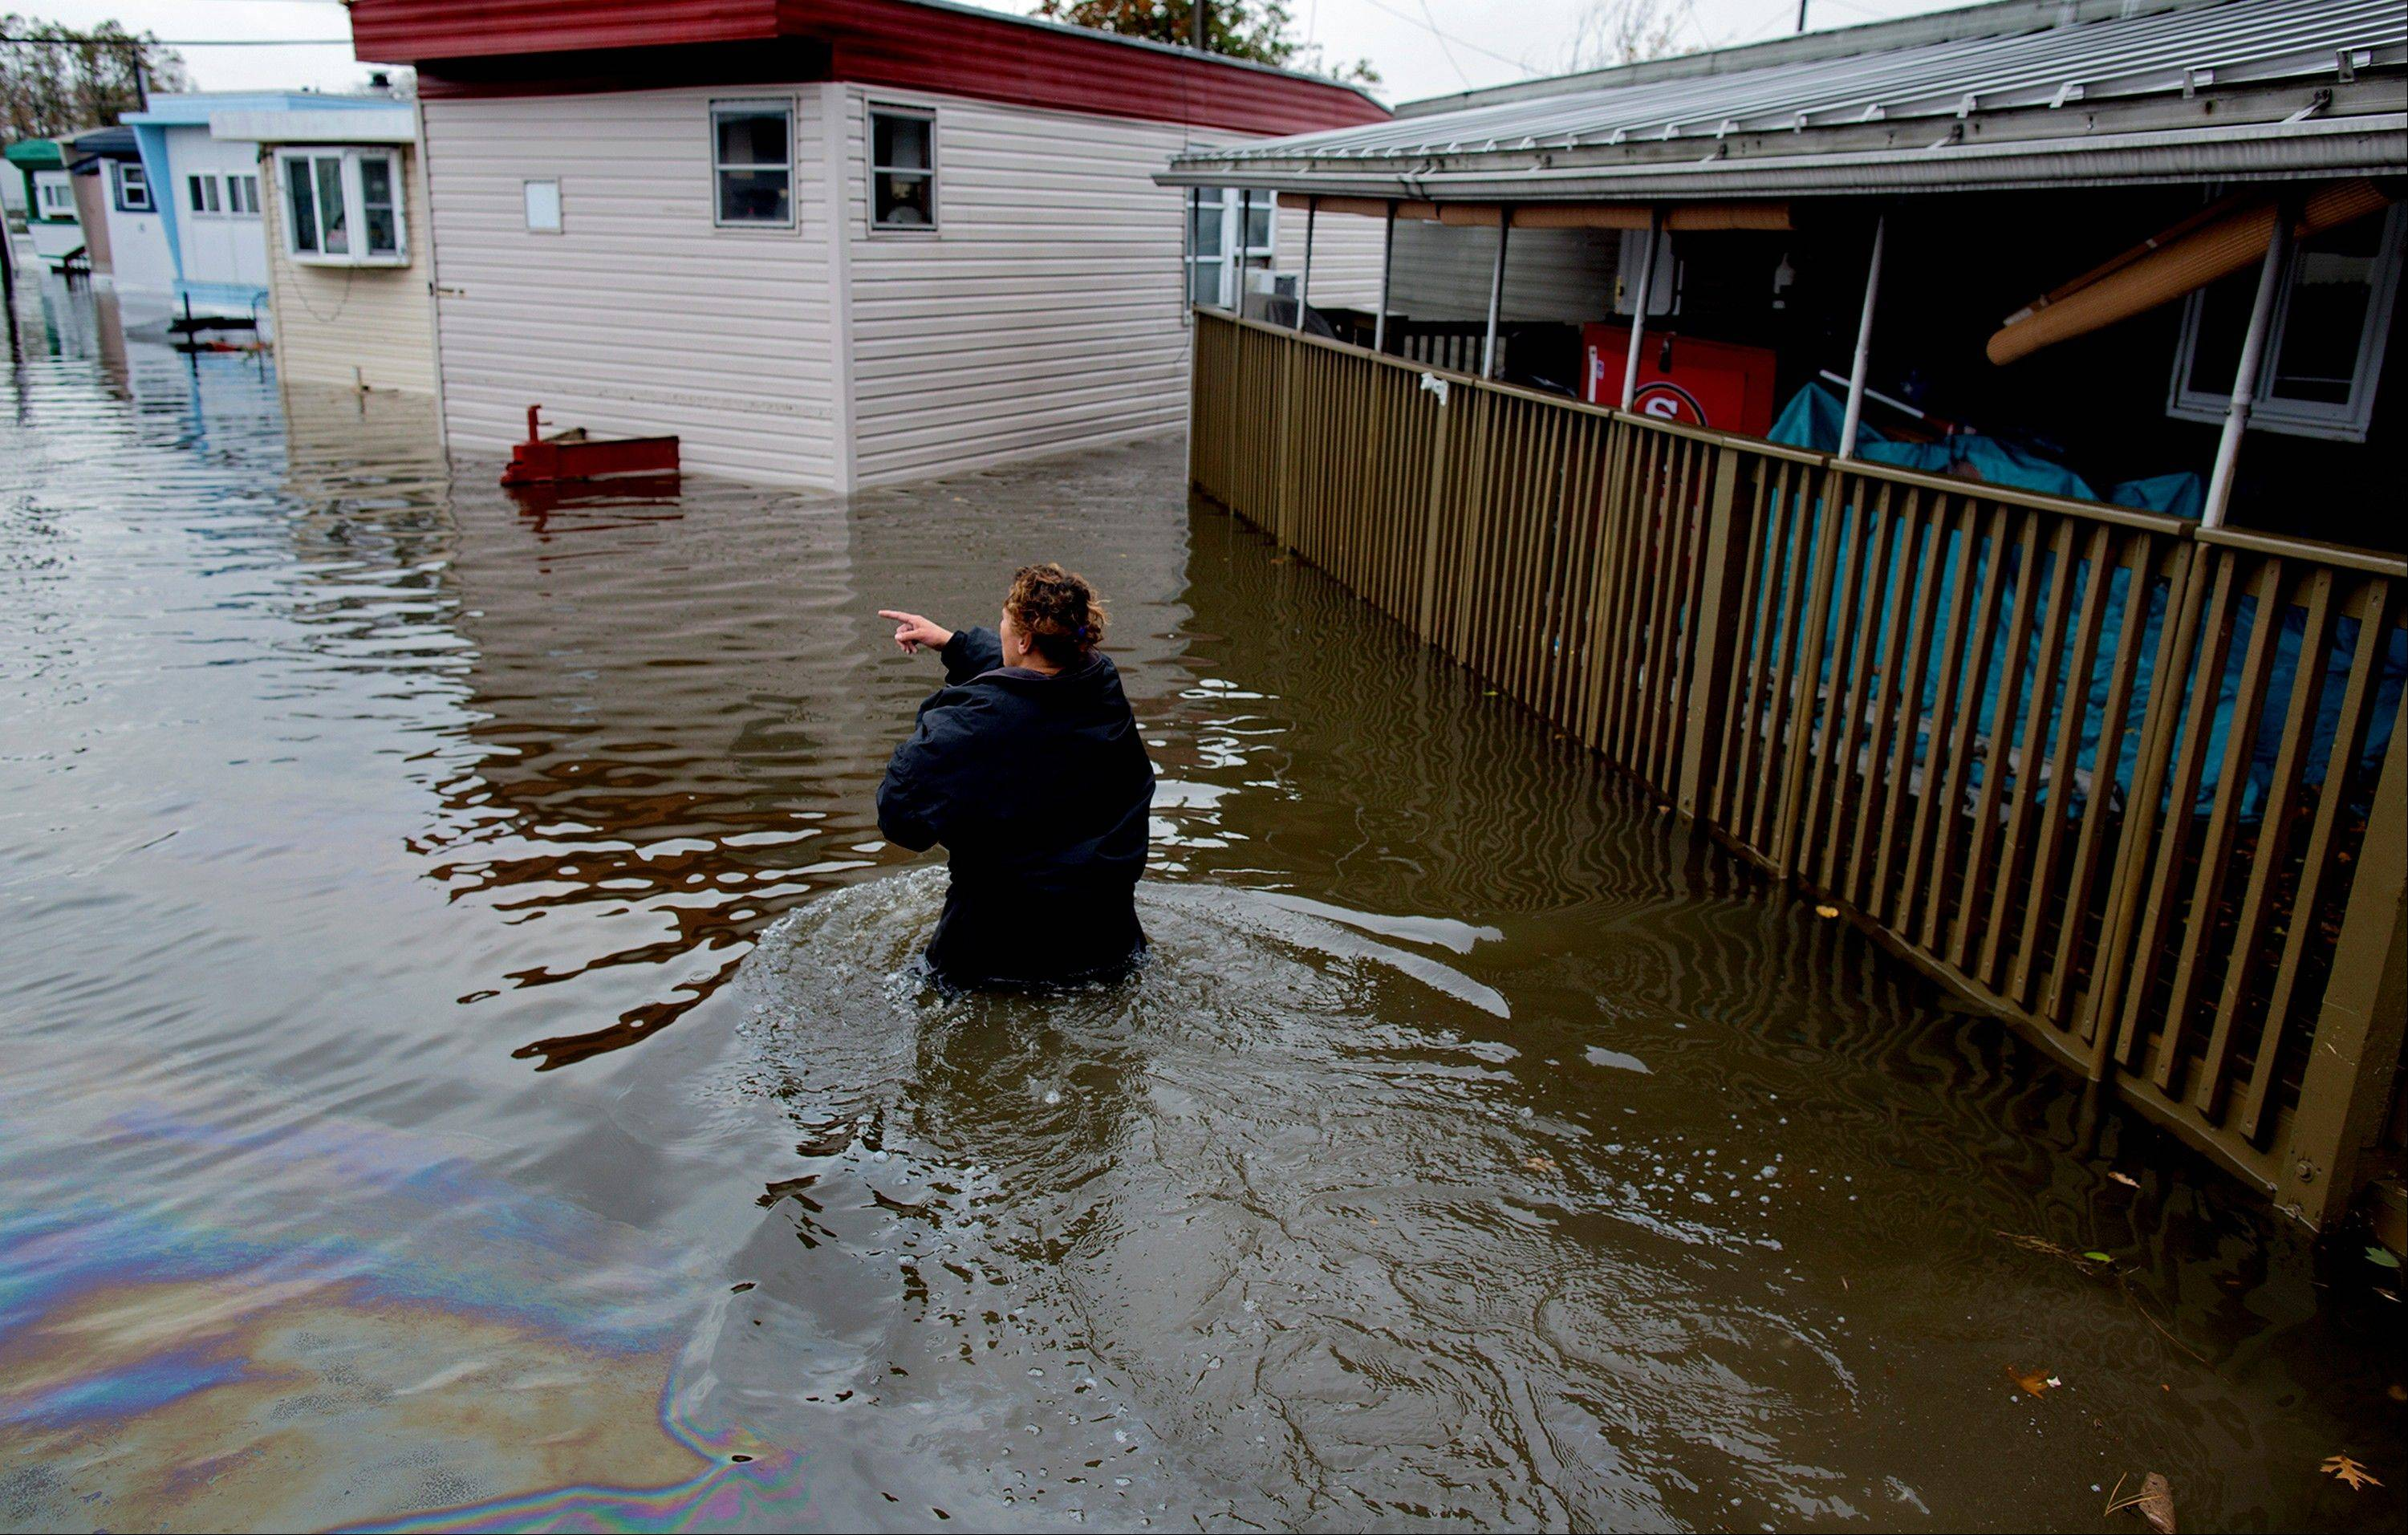 Andrea Grolon walks through waist-deep water in the Metropolitan Trailer Park in Moonachie, N.J. on Tuesday, Oct. 30, 2012. Grolon, a resident of the trailer park, was wading through oil covered water to help others get to rescue vehicles in the wake of superstorm Sandy.